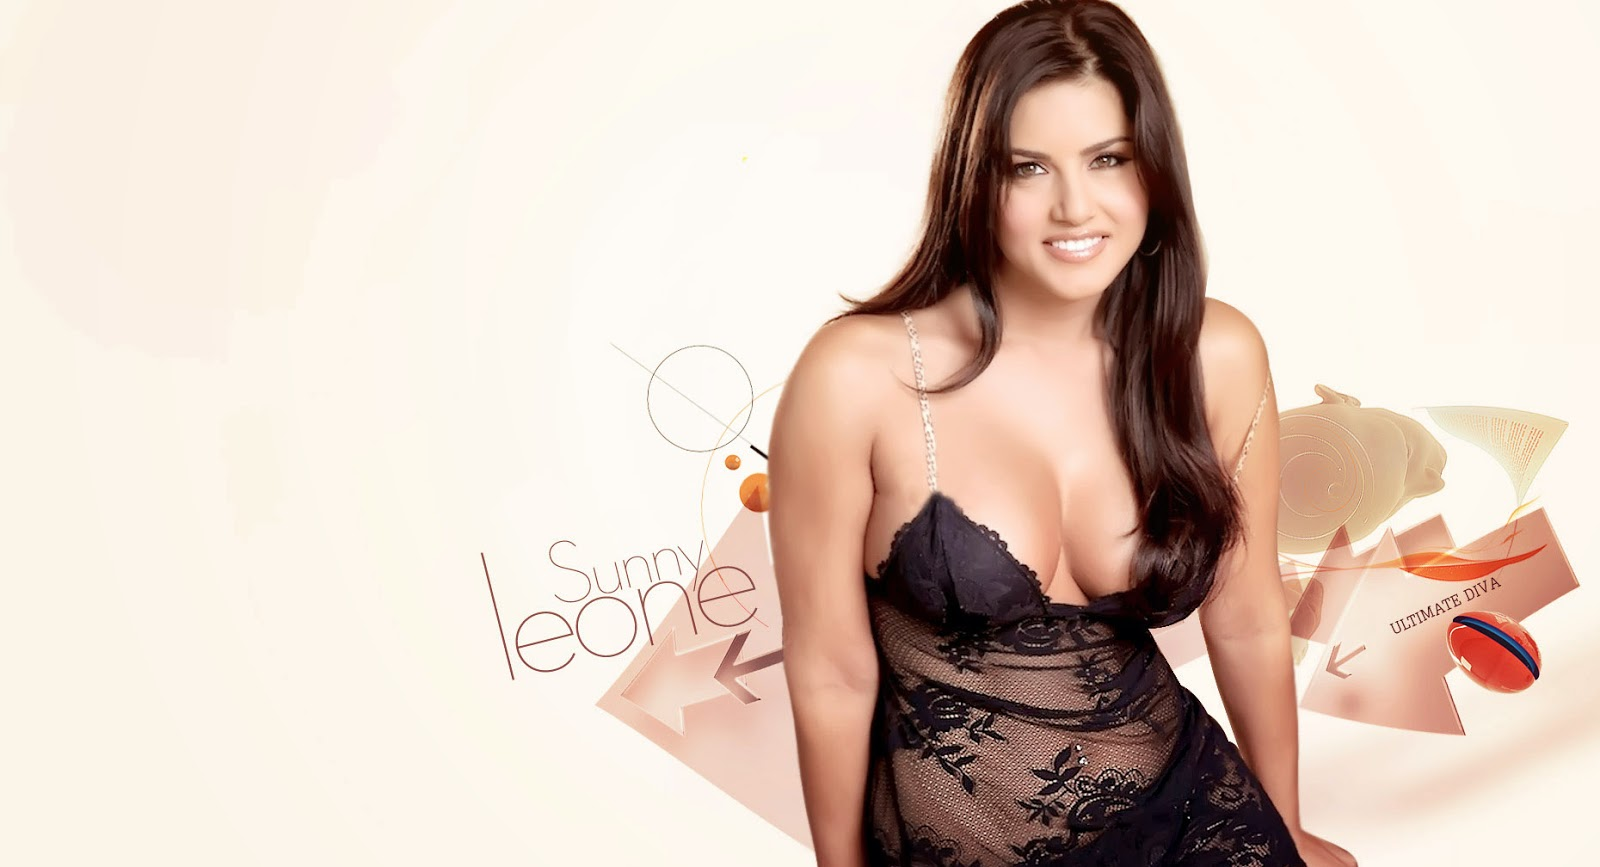 Global Pictures Gallery Sunny Leone Full Hd Wallpapers-3116